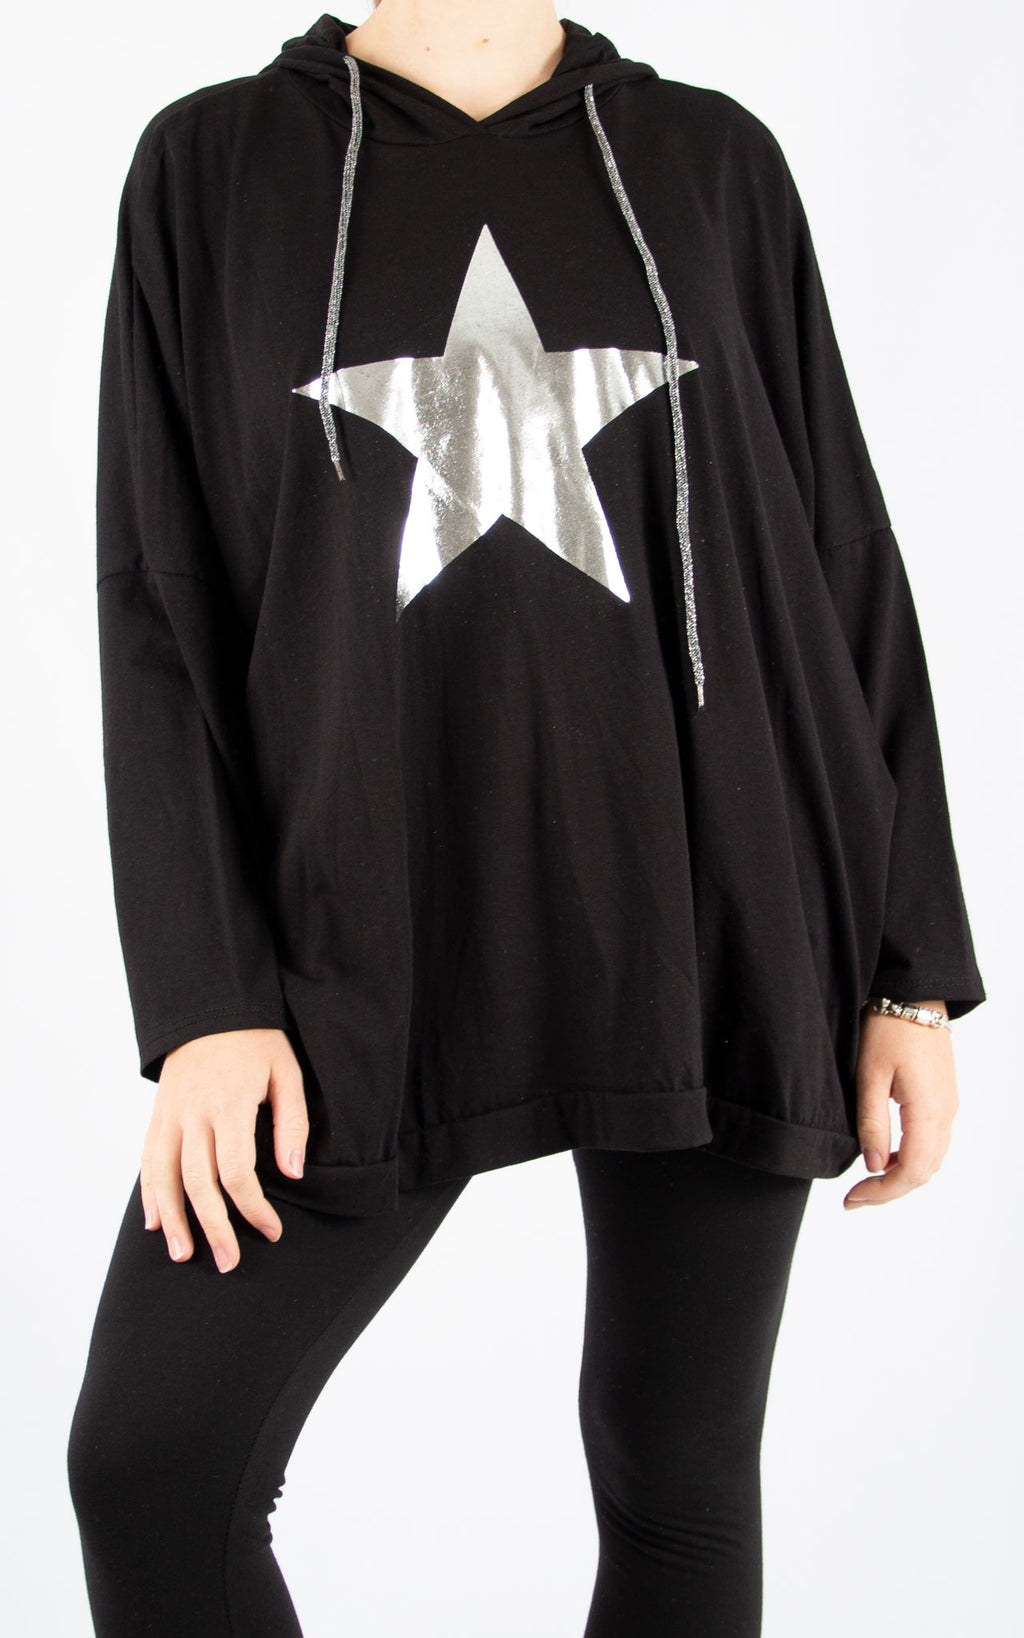 Layla Black Foil Star Hoodie | Made In Italy